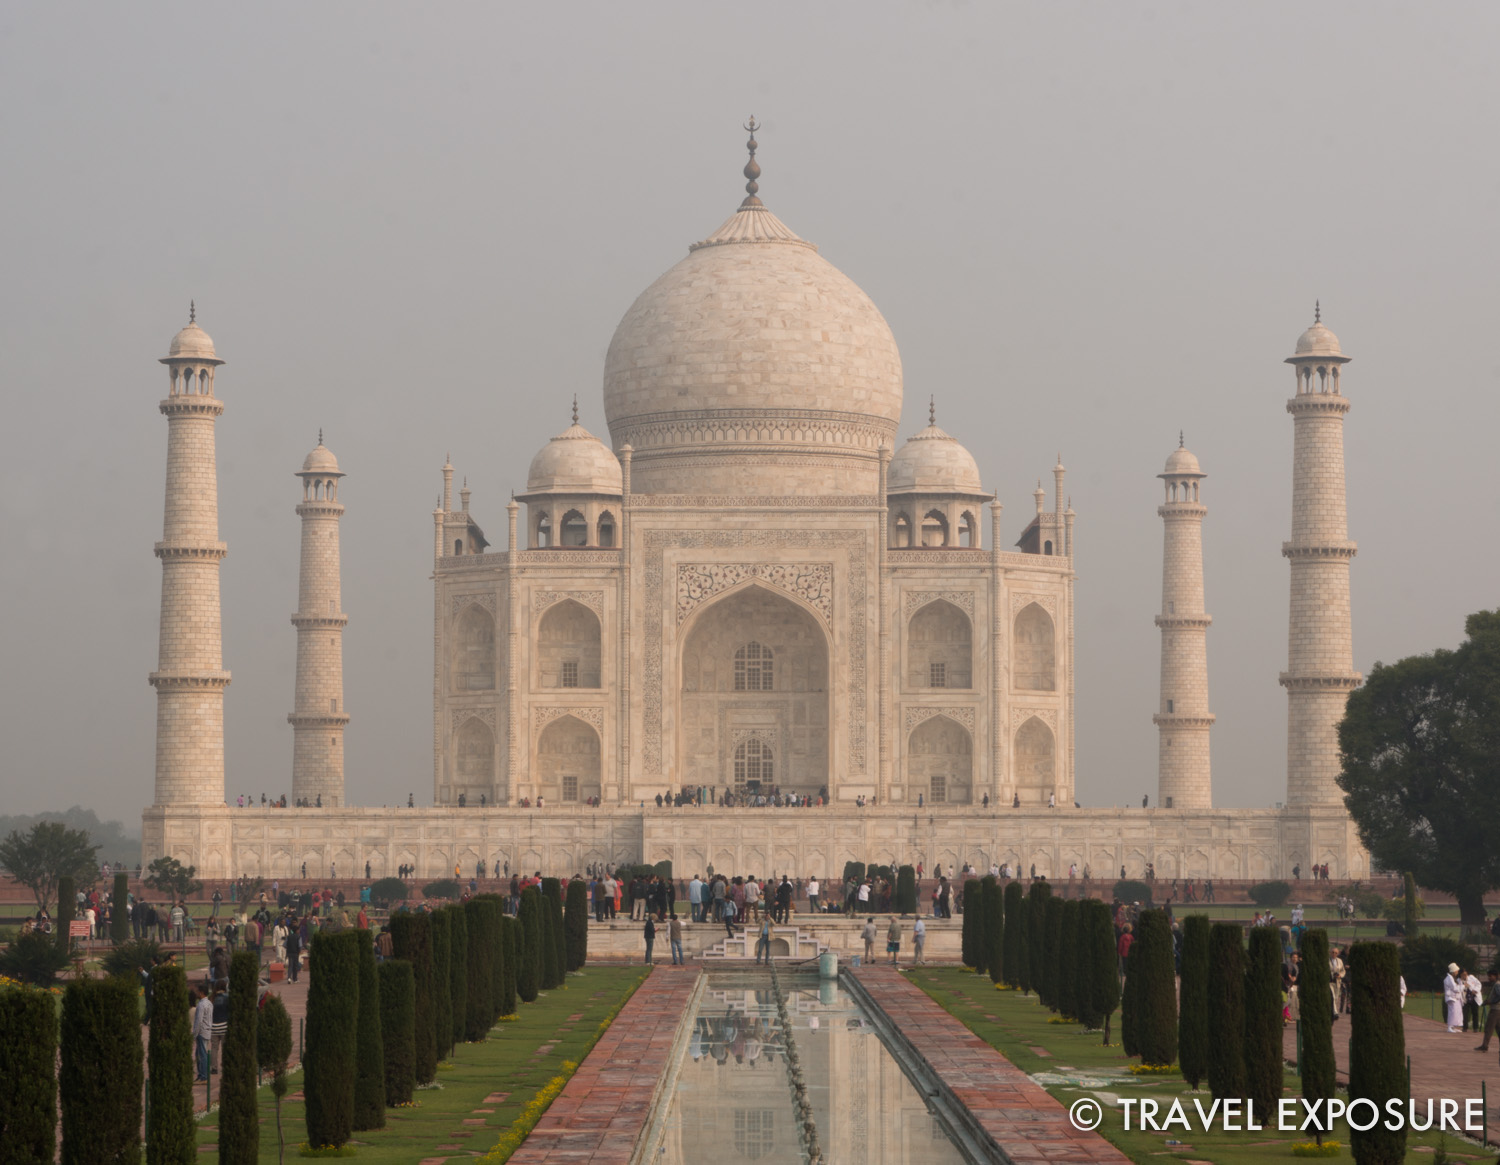 The elegant and majestic Taj Mahal